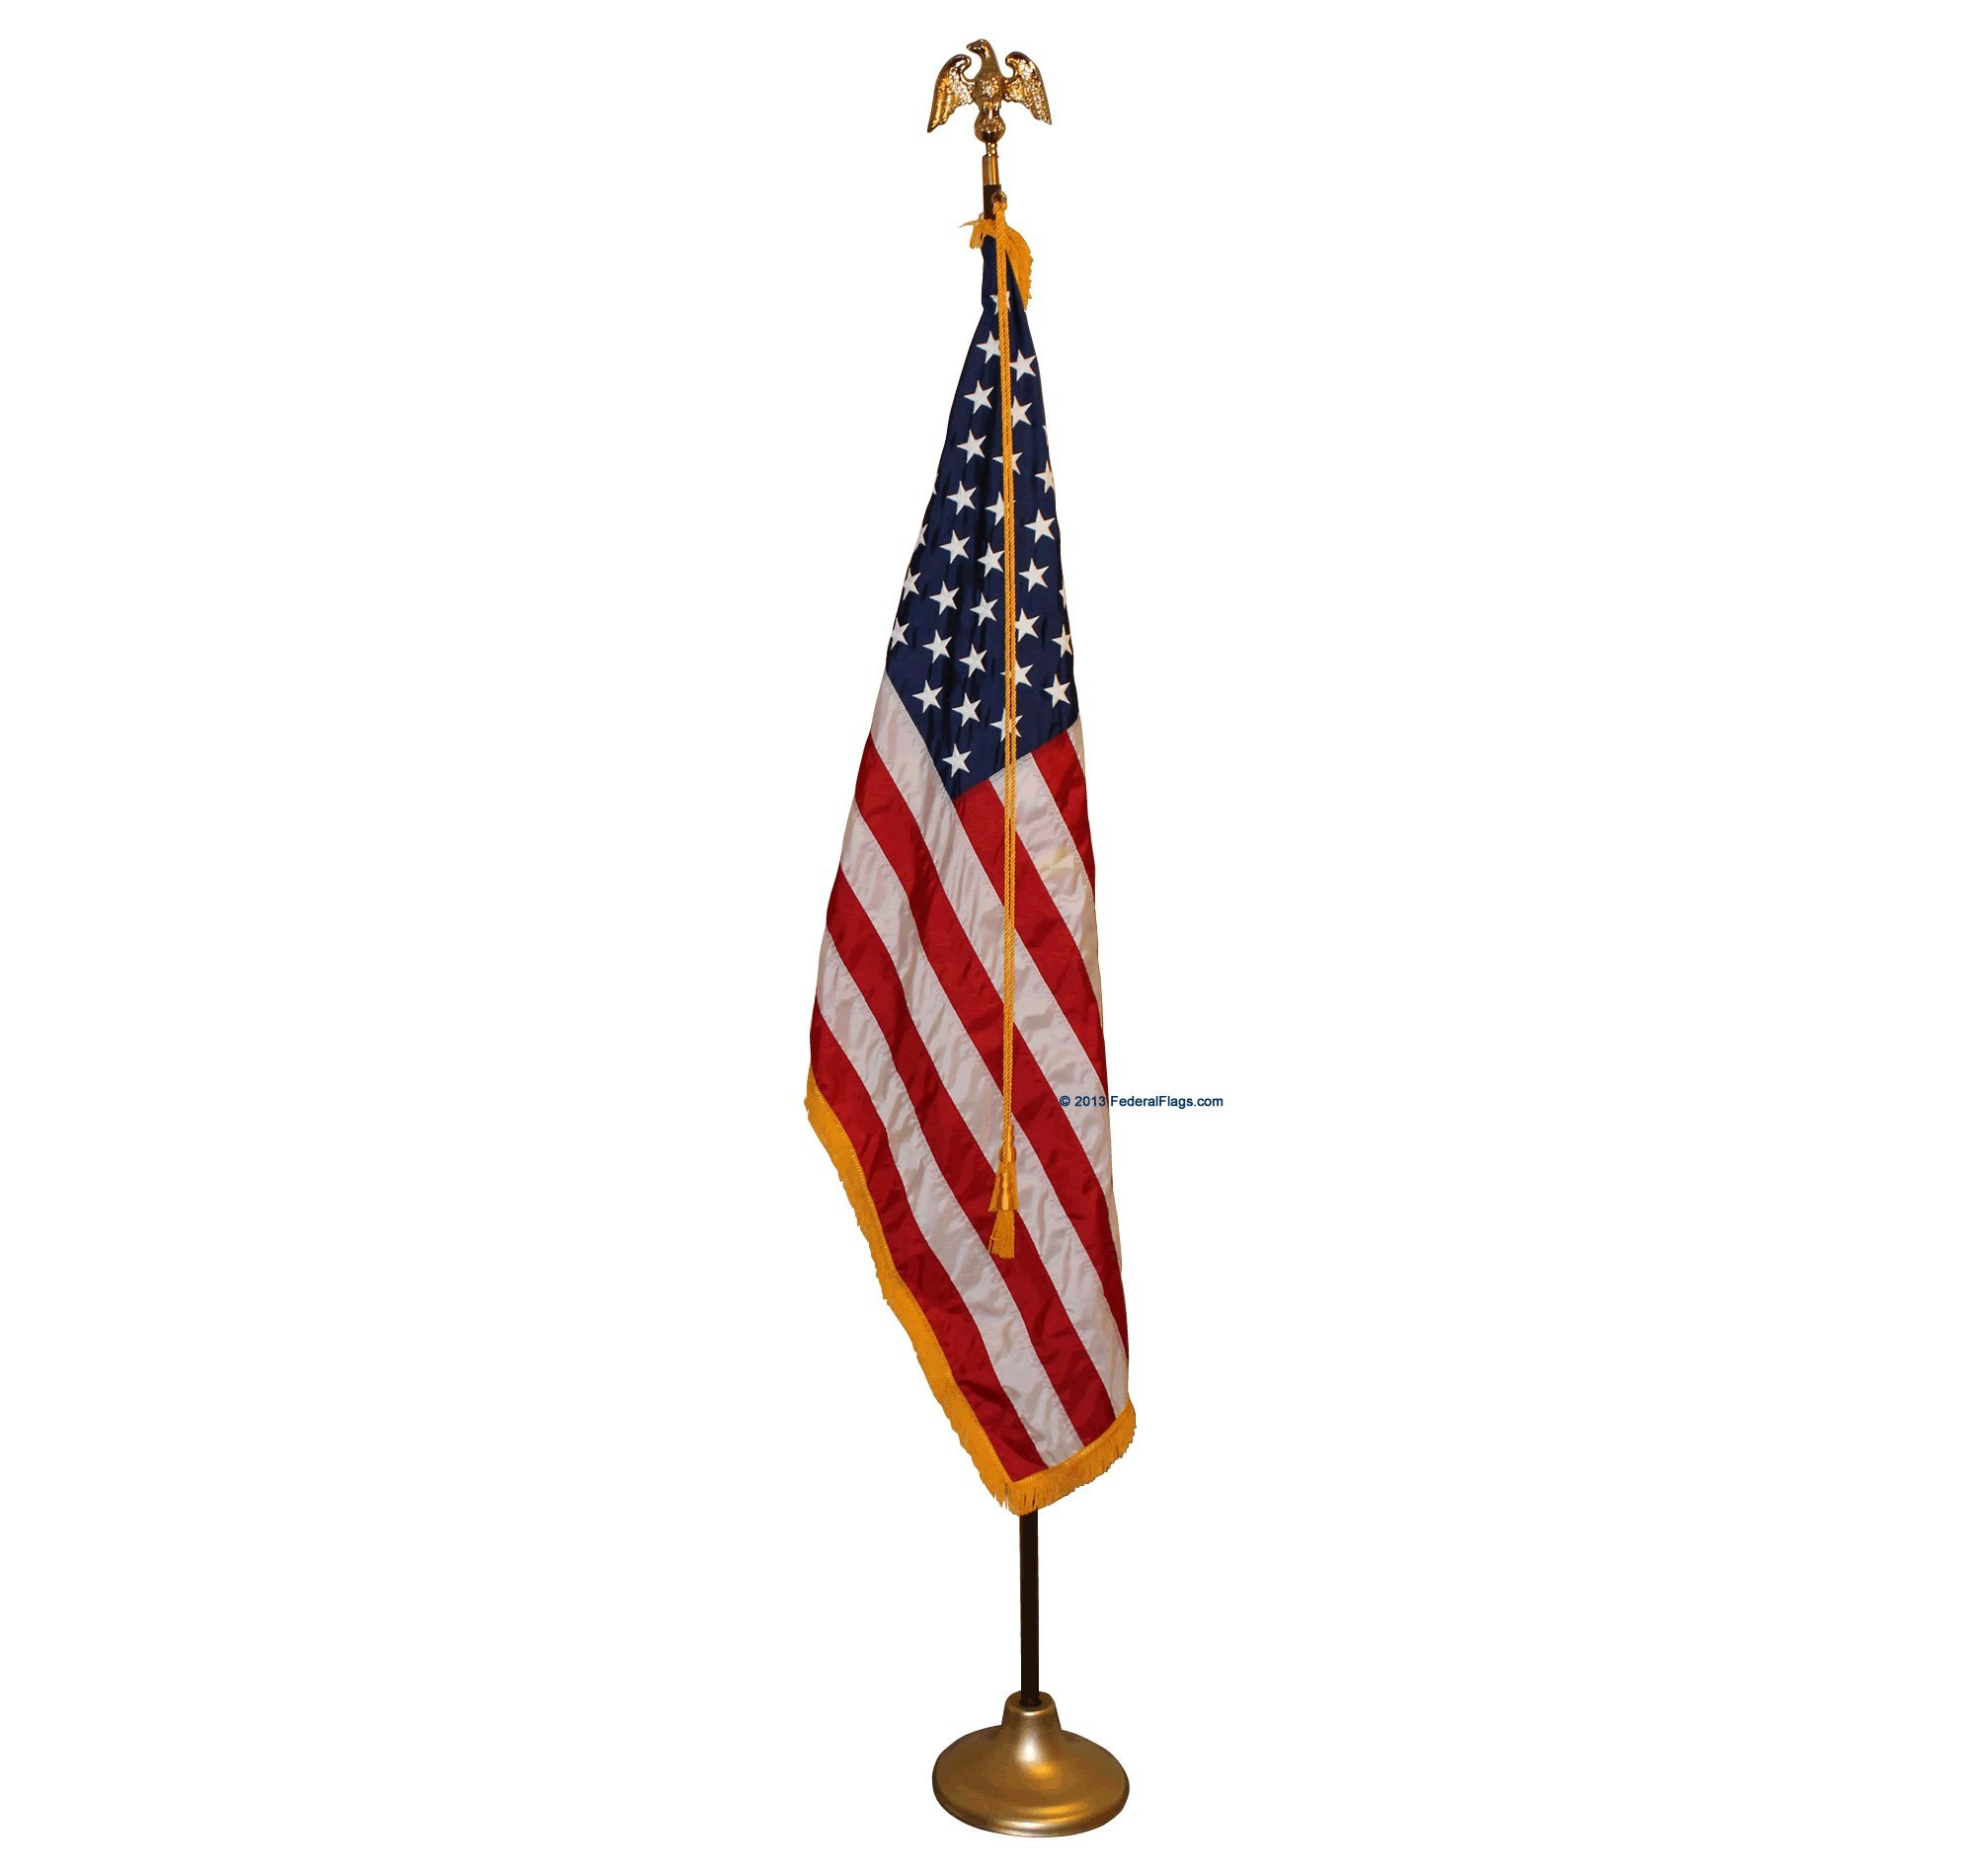 8ft. Indoor American Flag Pole Set - Government, Institutional & Commercial Grade by Federal Flags